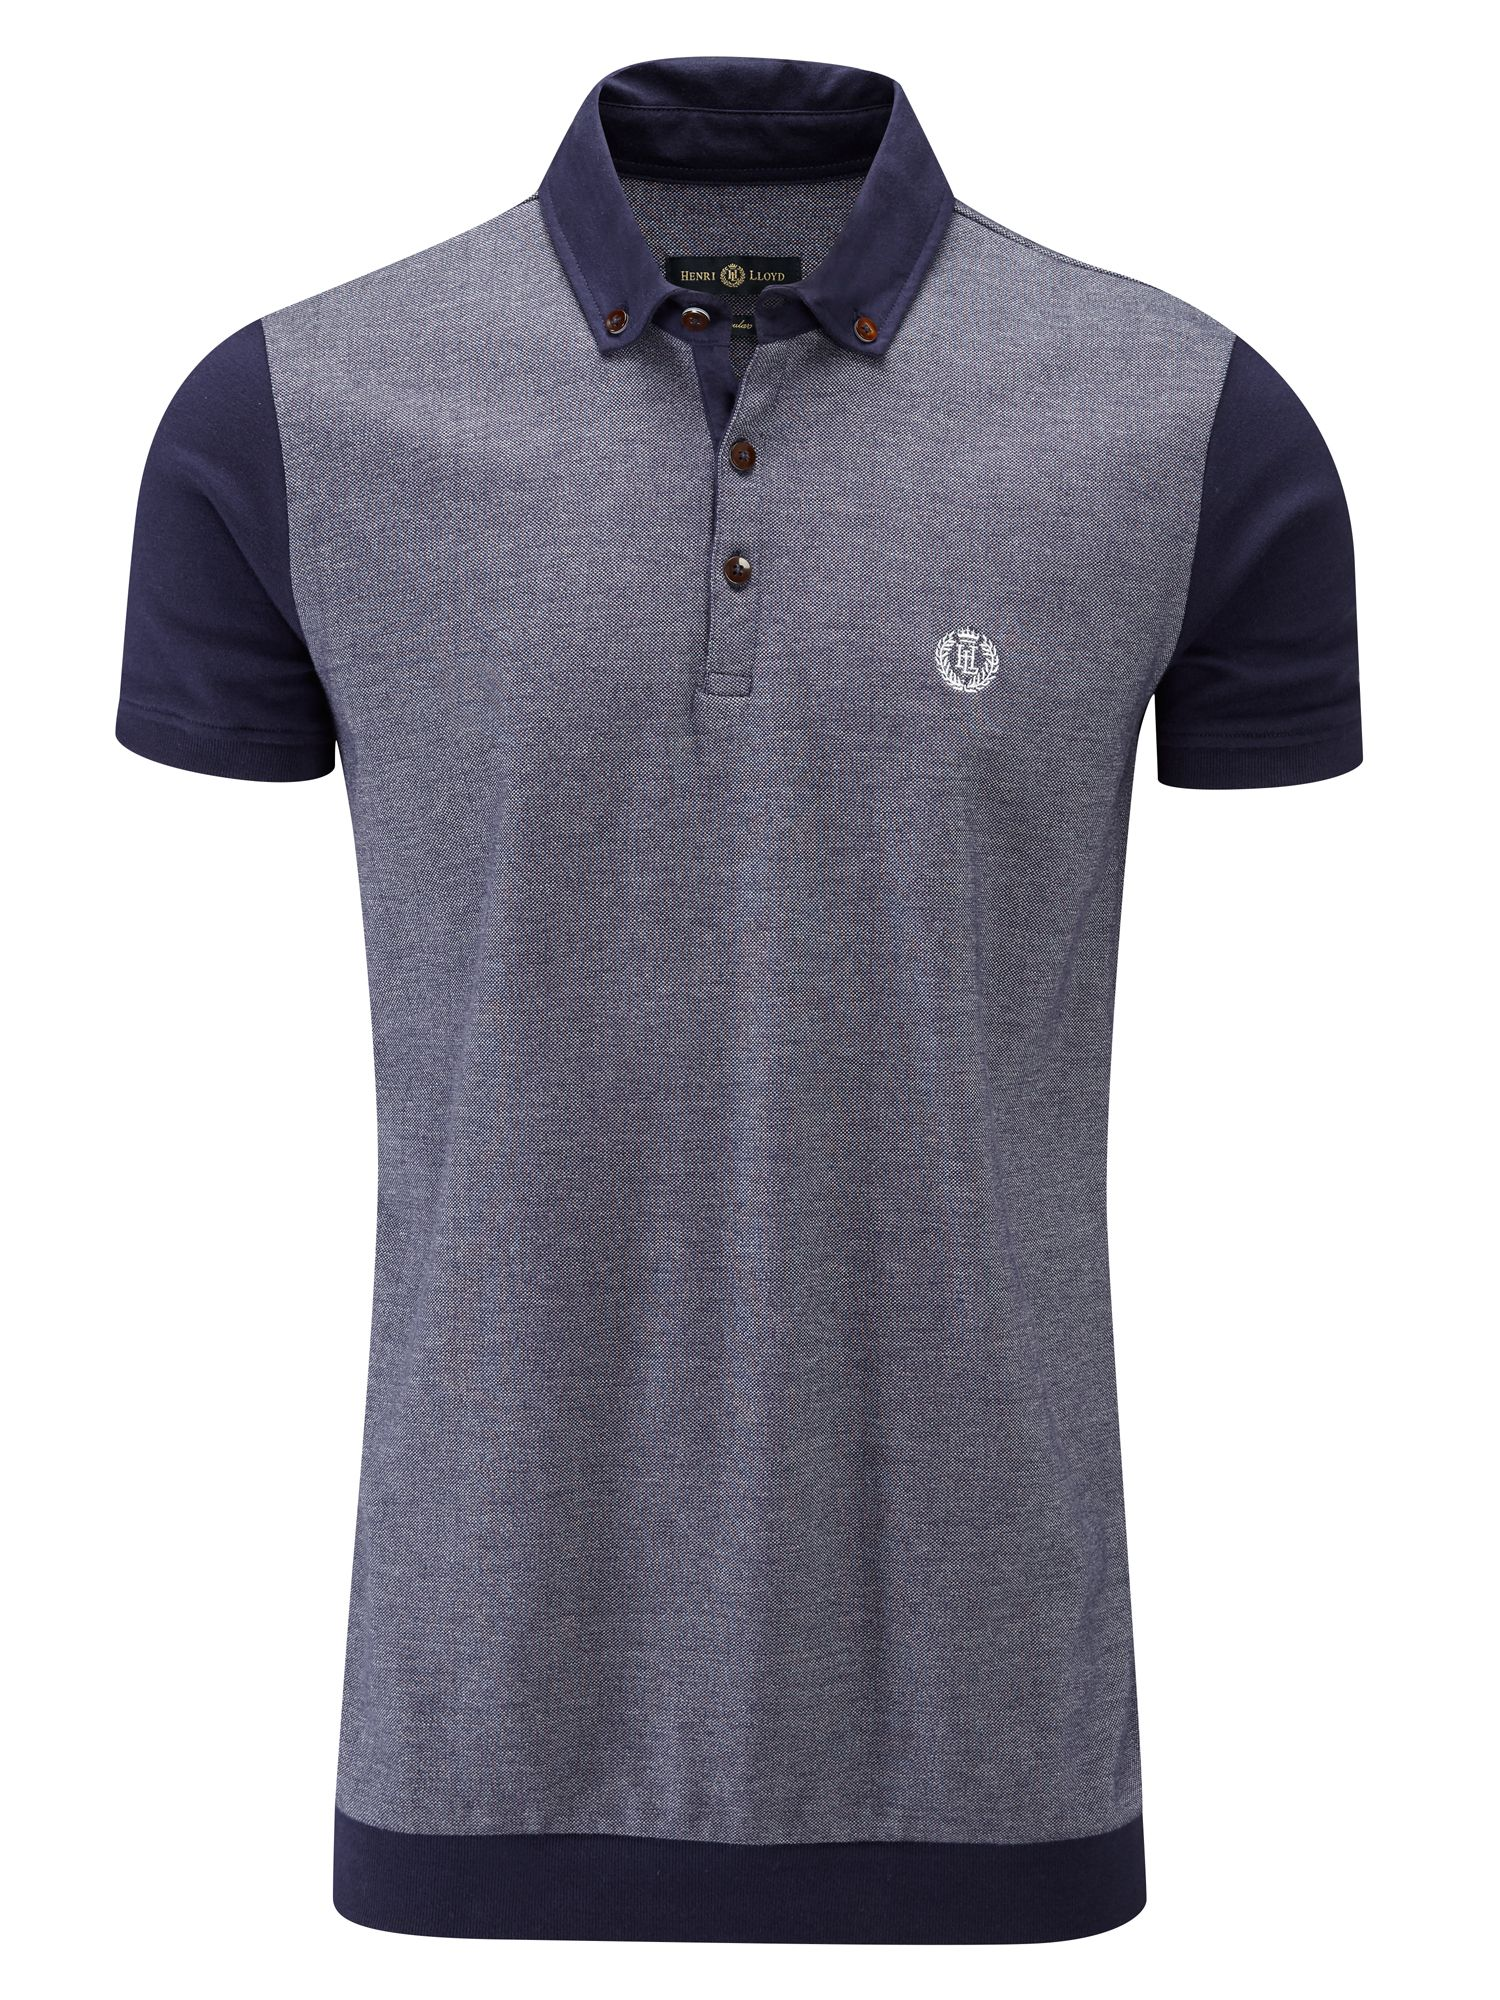 Men's Henri Lloyd Pendle Regular Polo, Eclipse